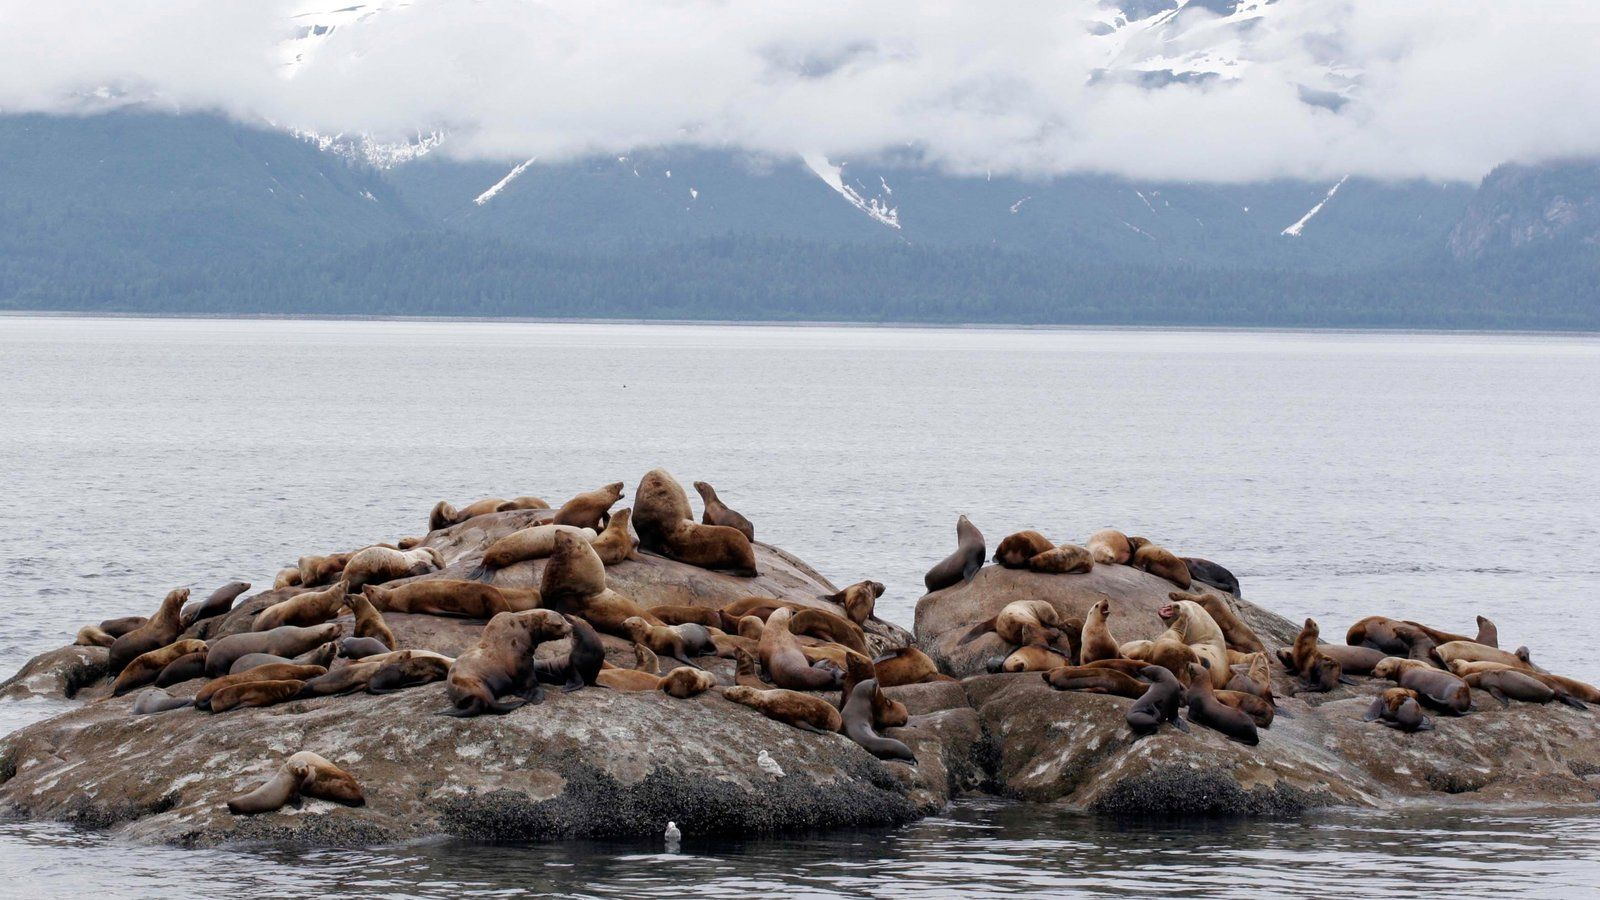 Glacier Bay National Park Pictures: View Photos & Image of